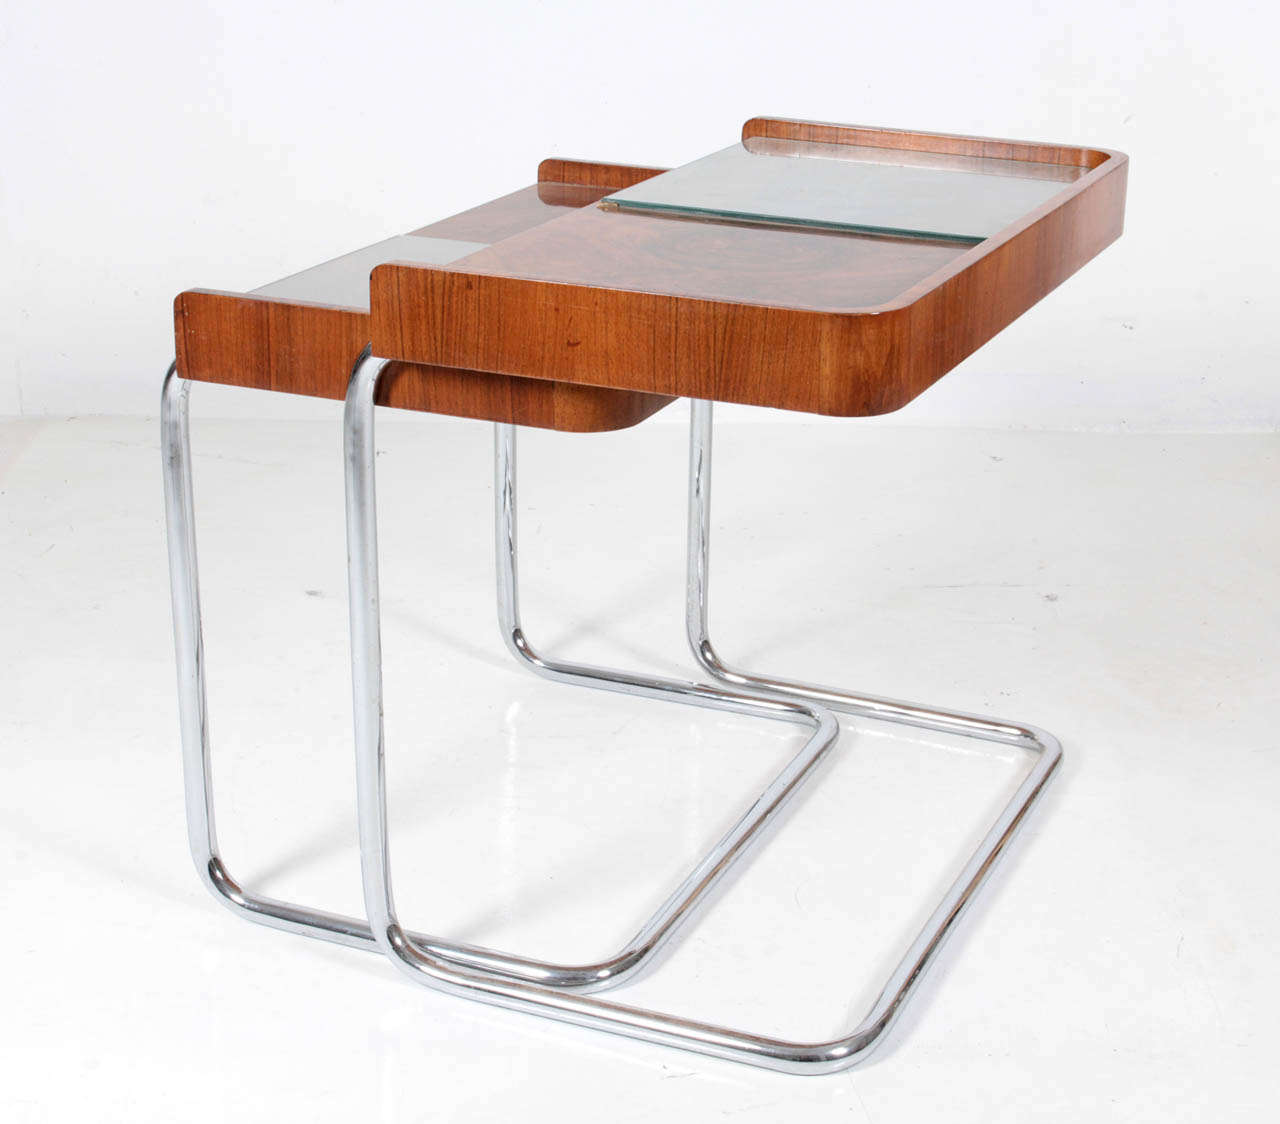 Bauhaus Thonet Nesting Tables c. 1930